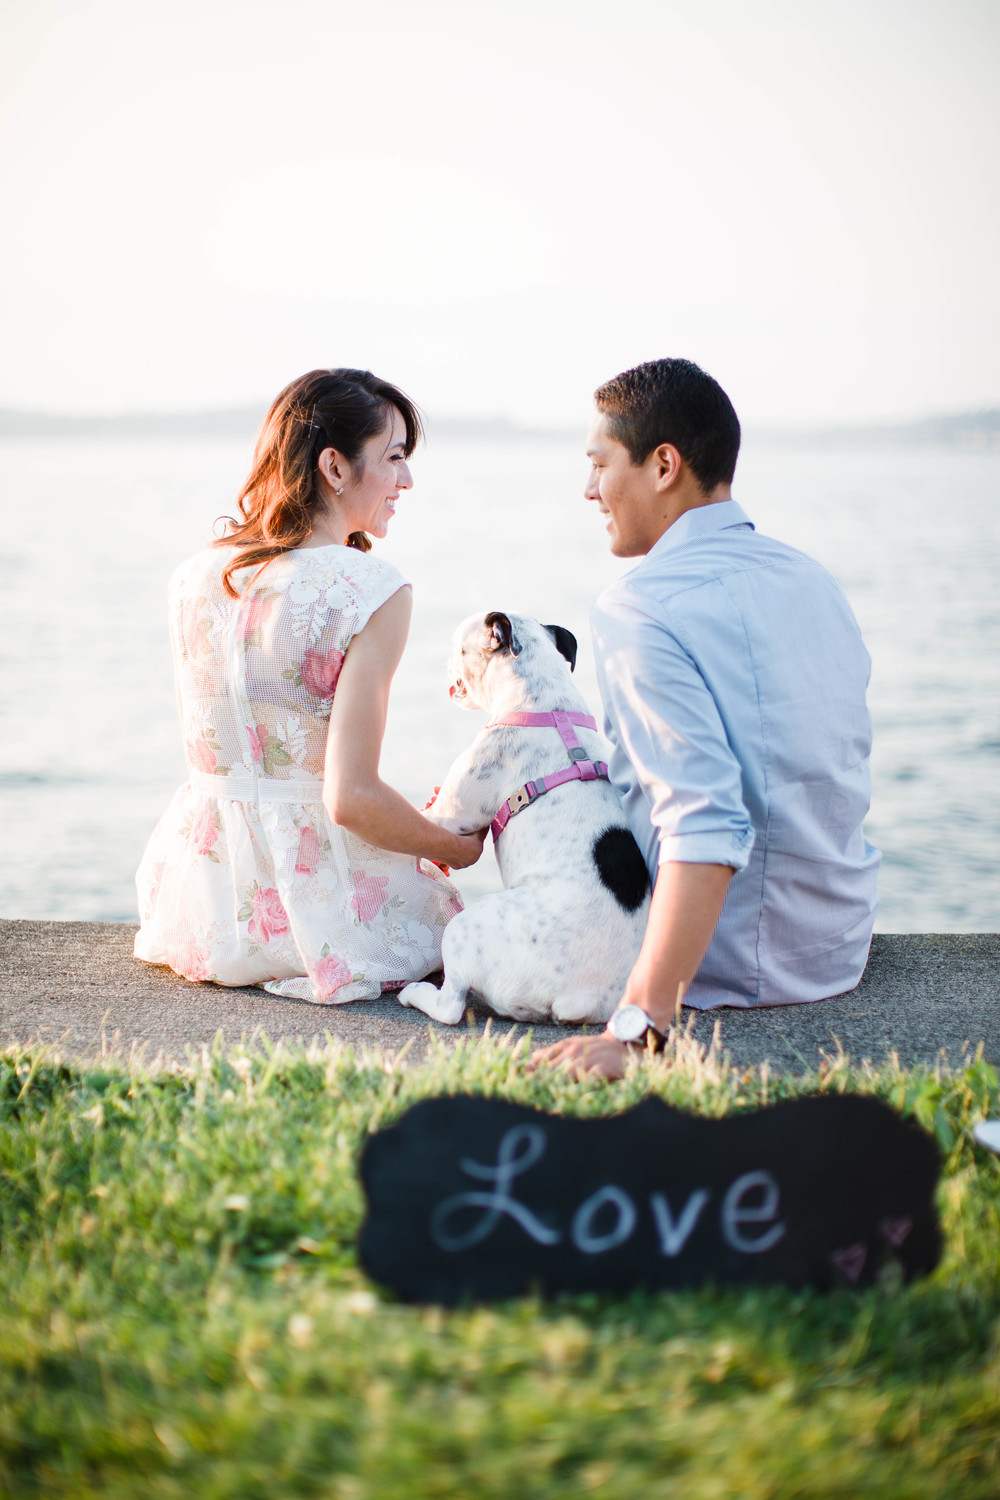 Cruz+Robert ©2015AdinaPrestonPhotography-Seattle+Photographer+Engagement-Weddings-24.jpg